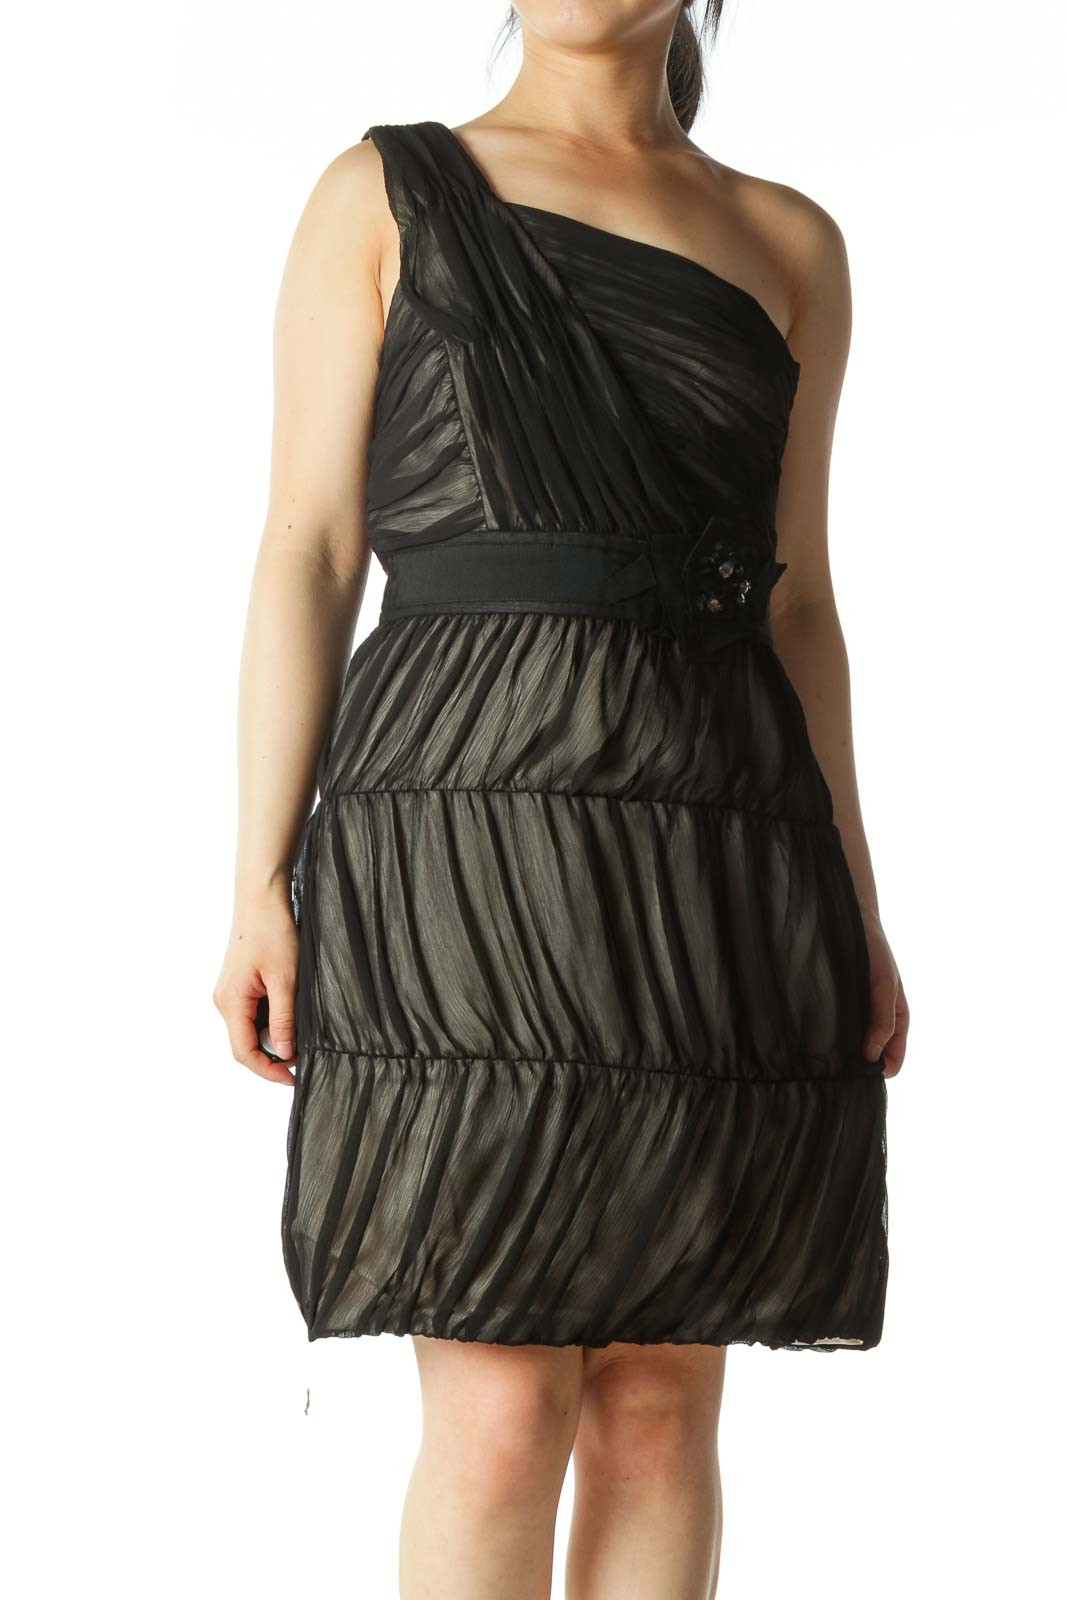 Black Chiffon One-Shoulder Dress